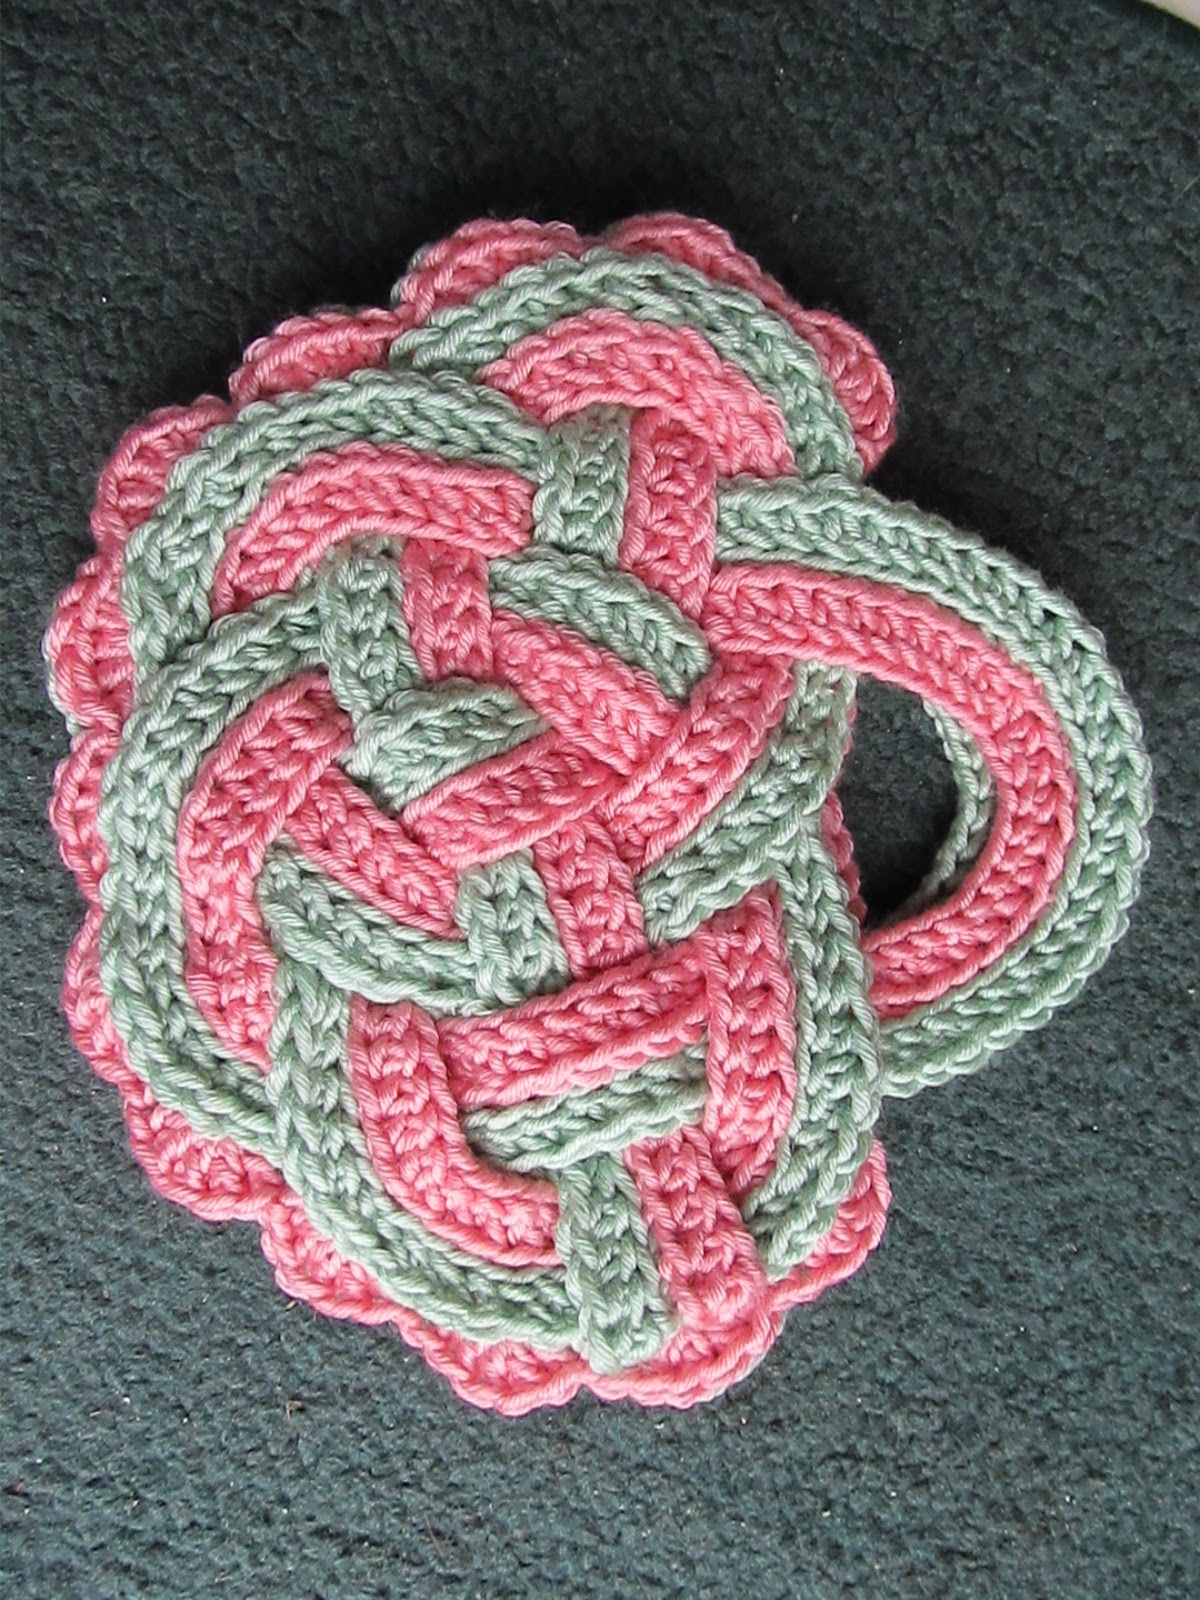 Crochet Knot : Celtic Knot Crochet: Patterns Coming Soon to Ravelry